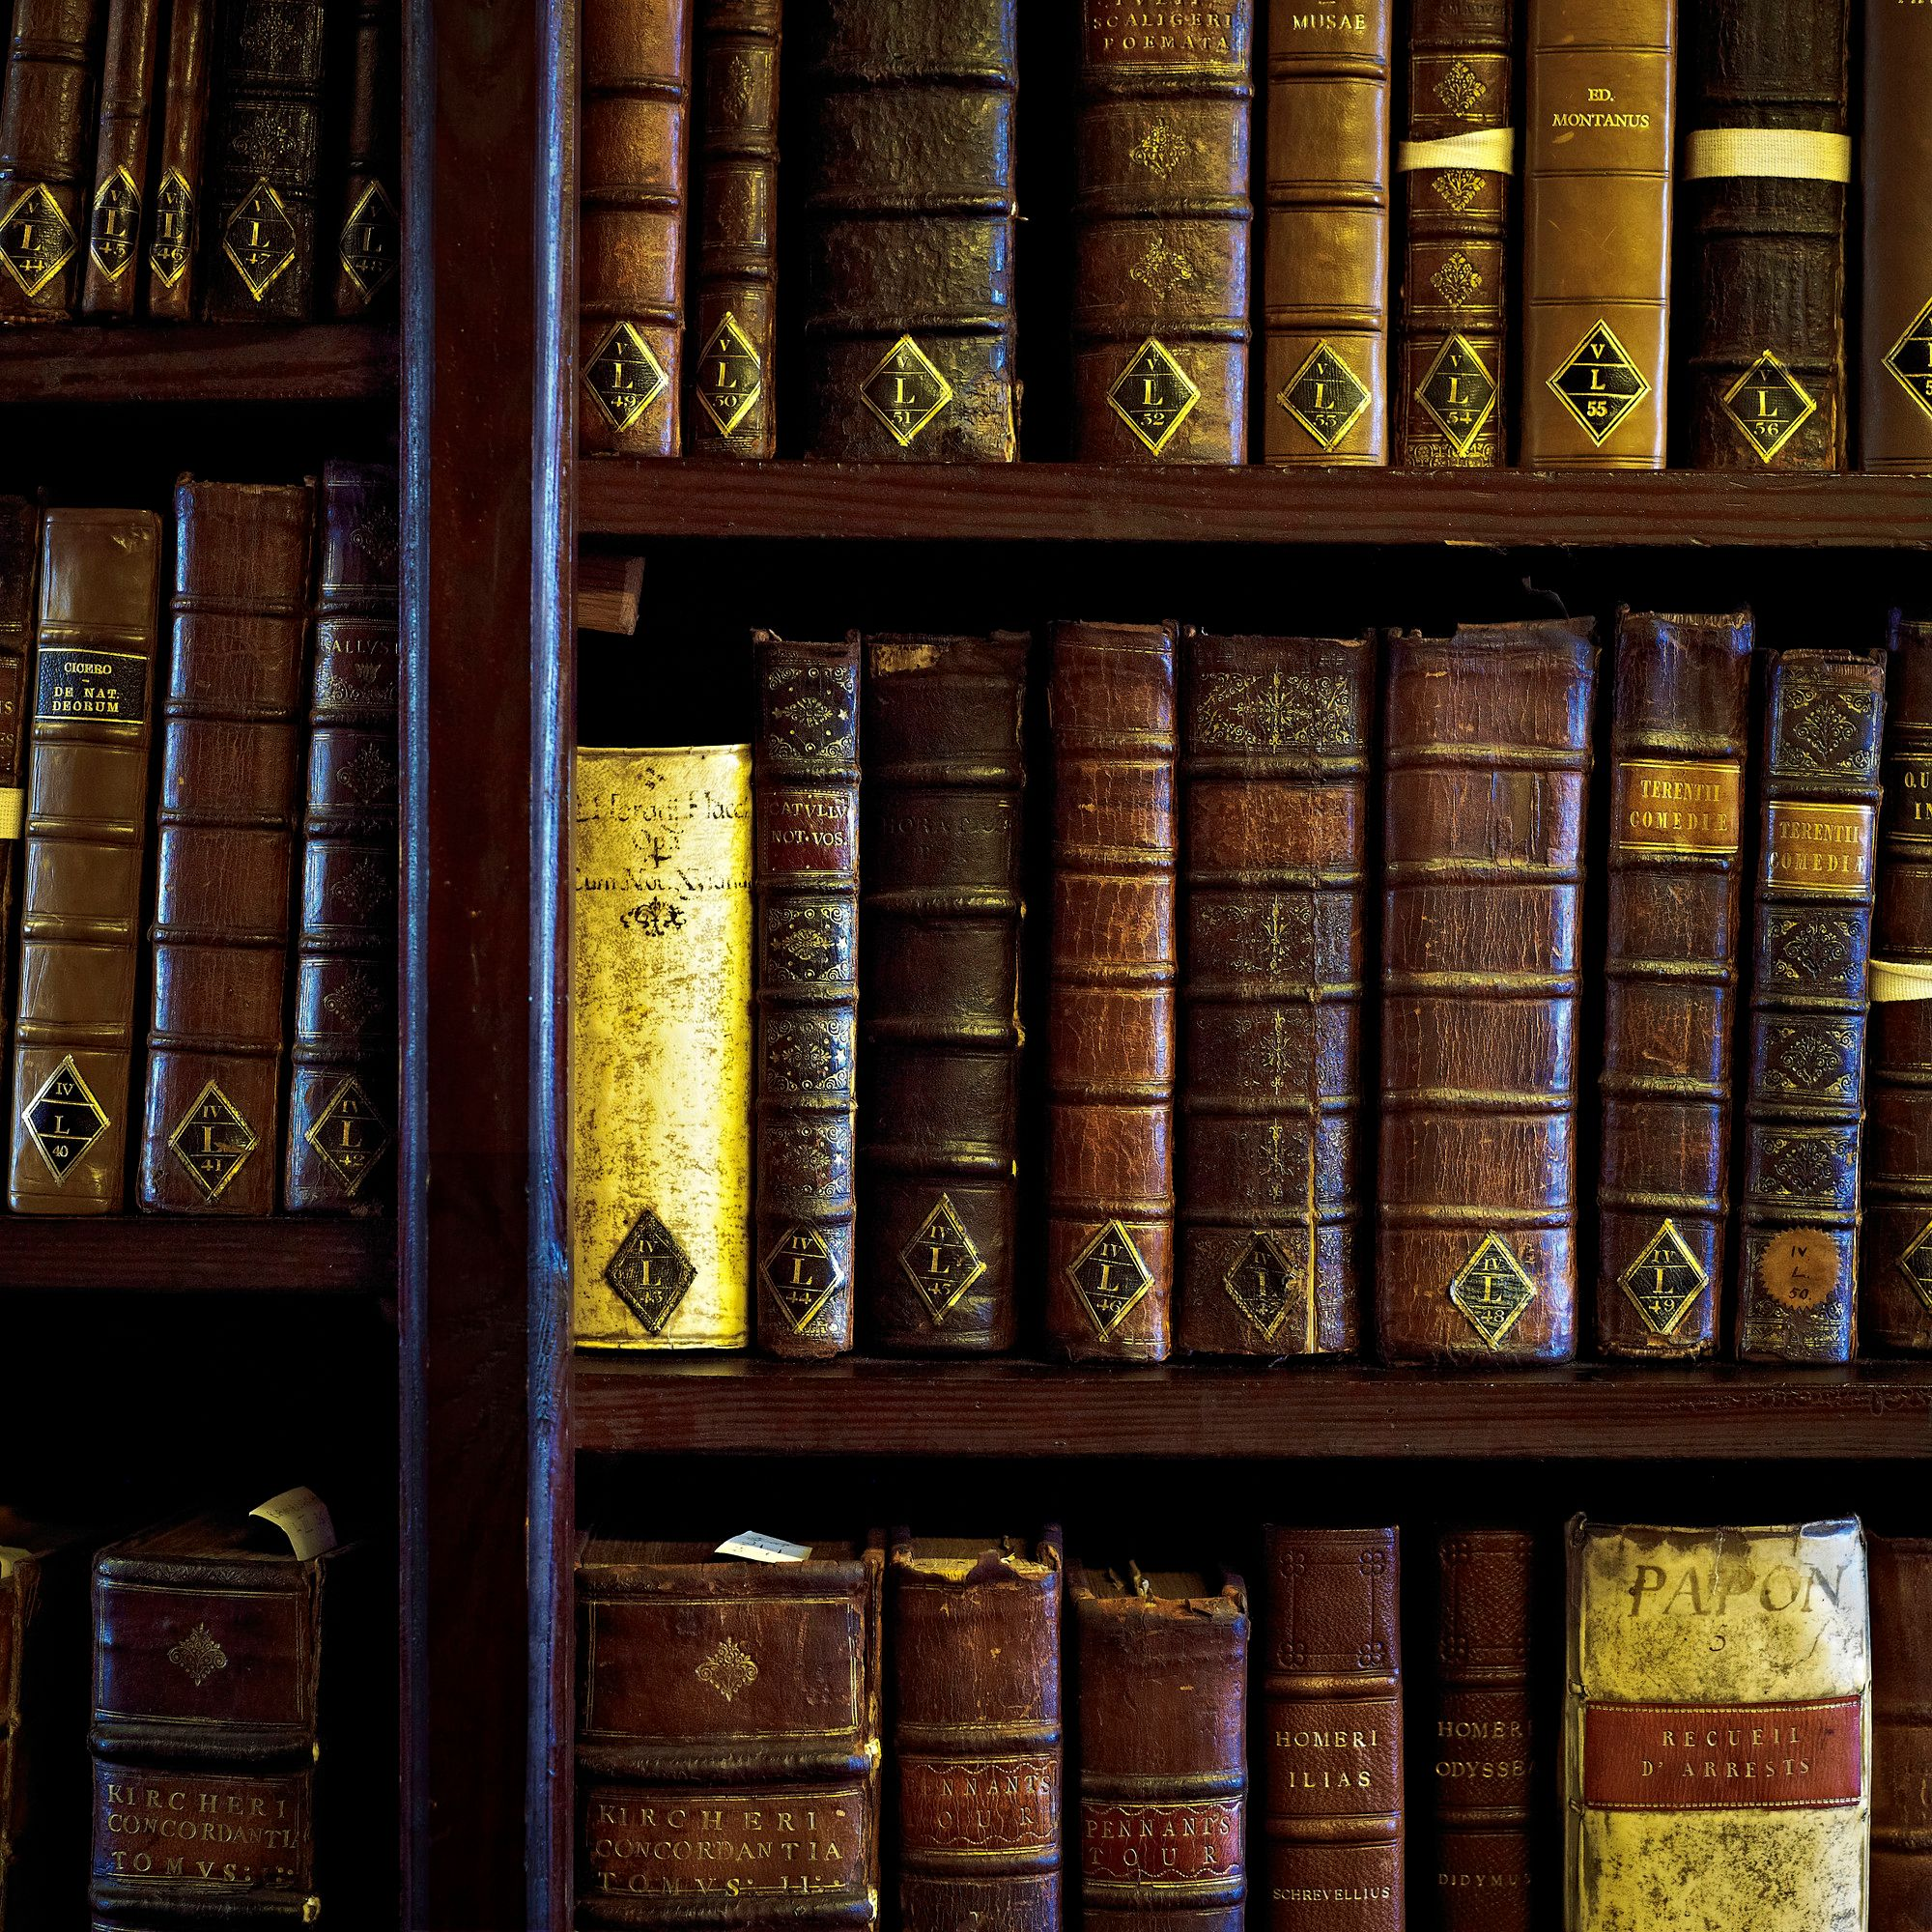 Palace Green Library books